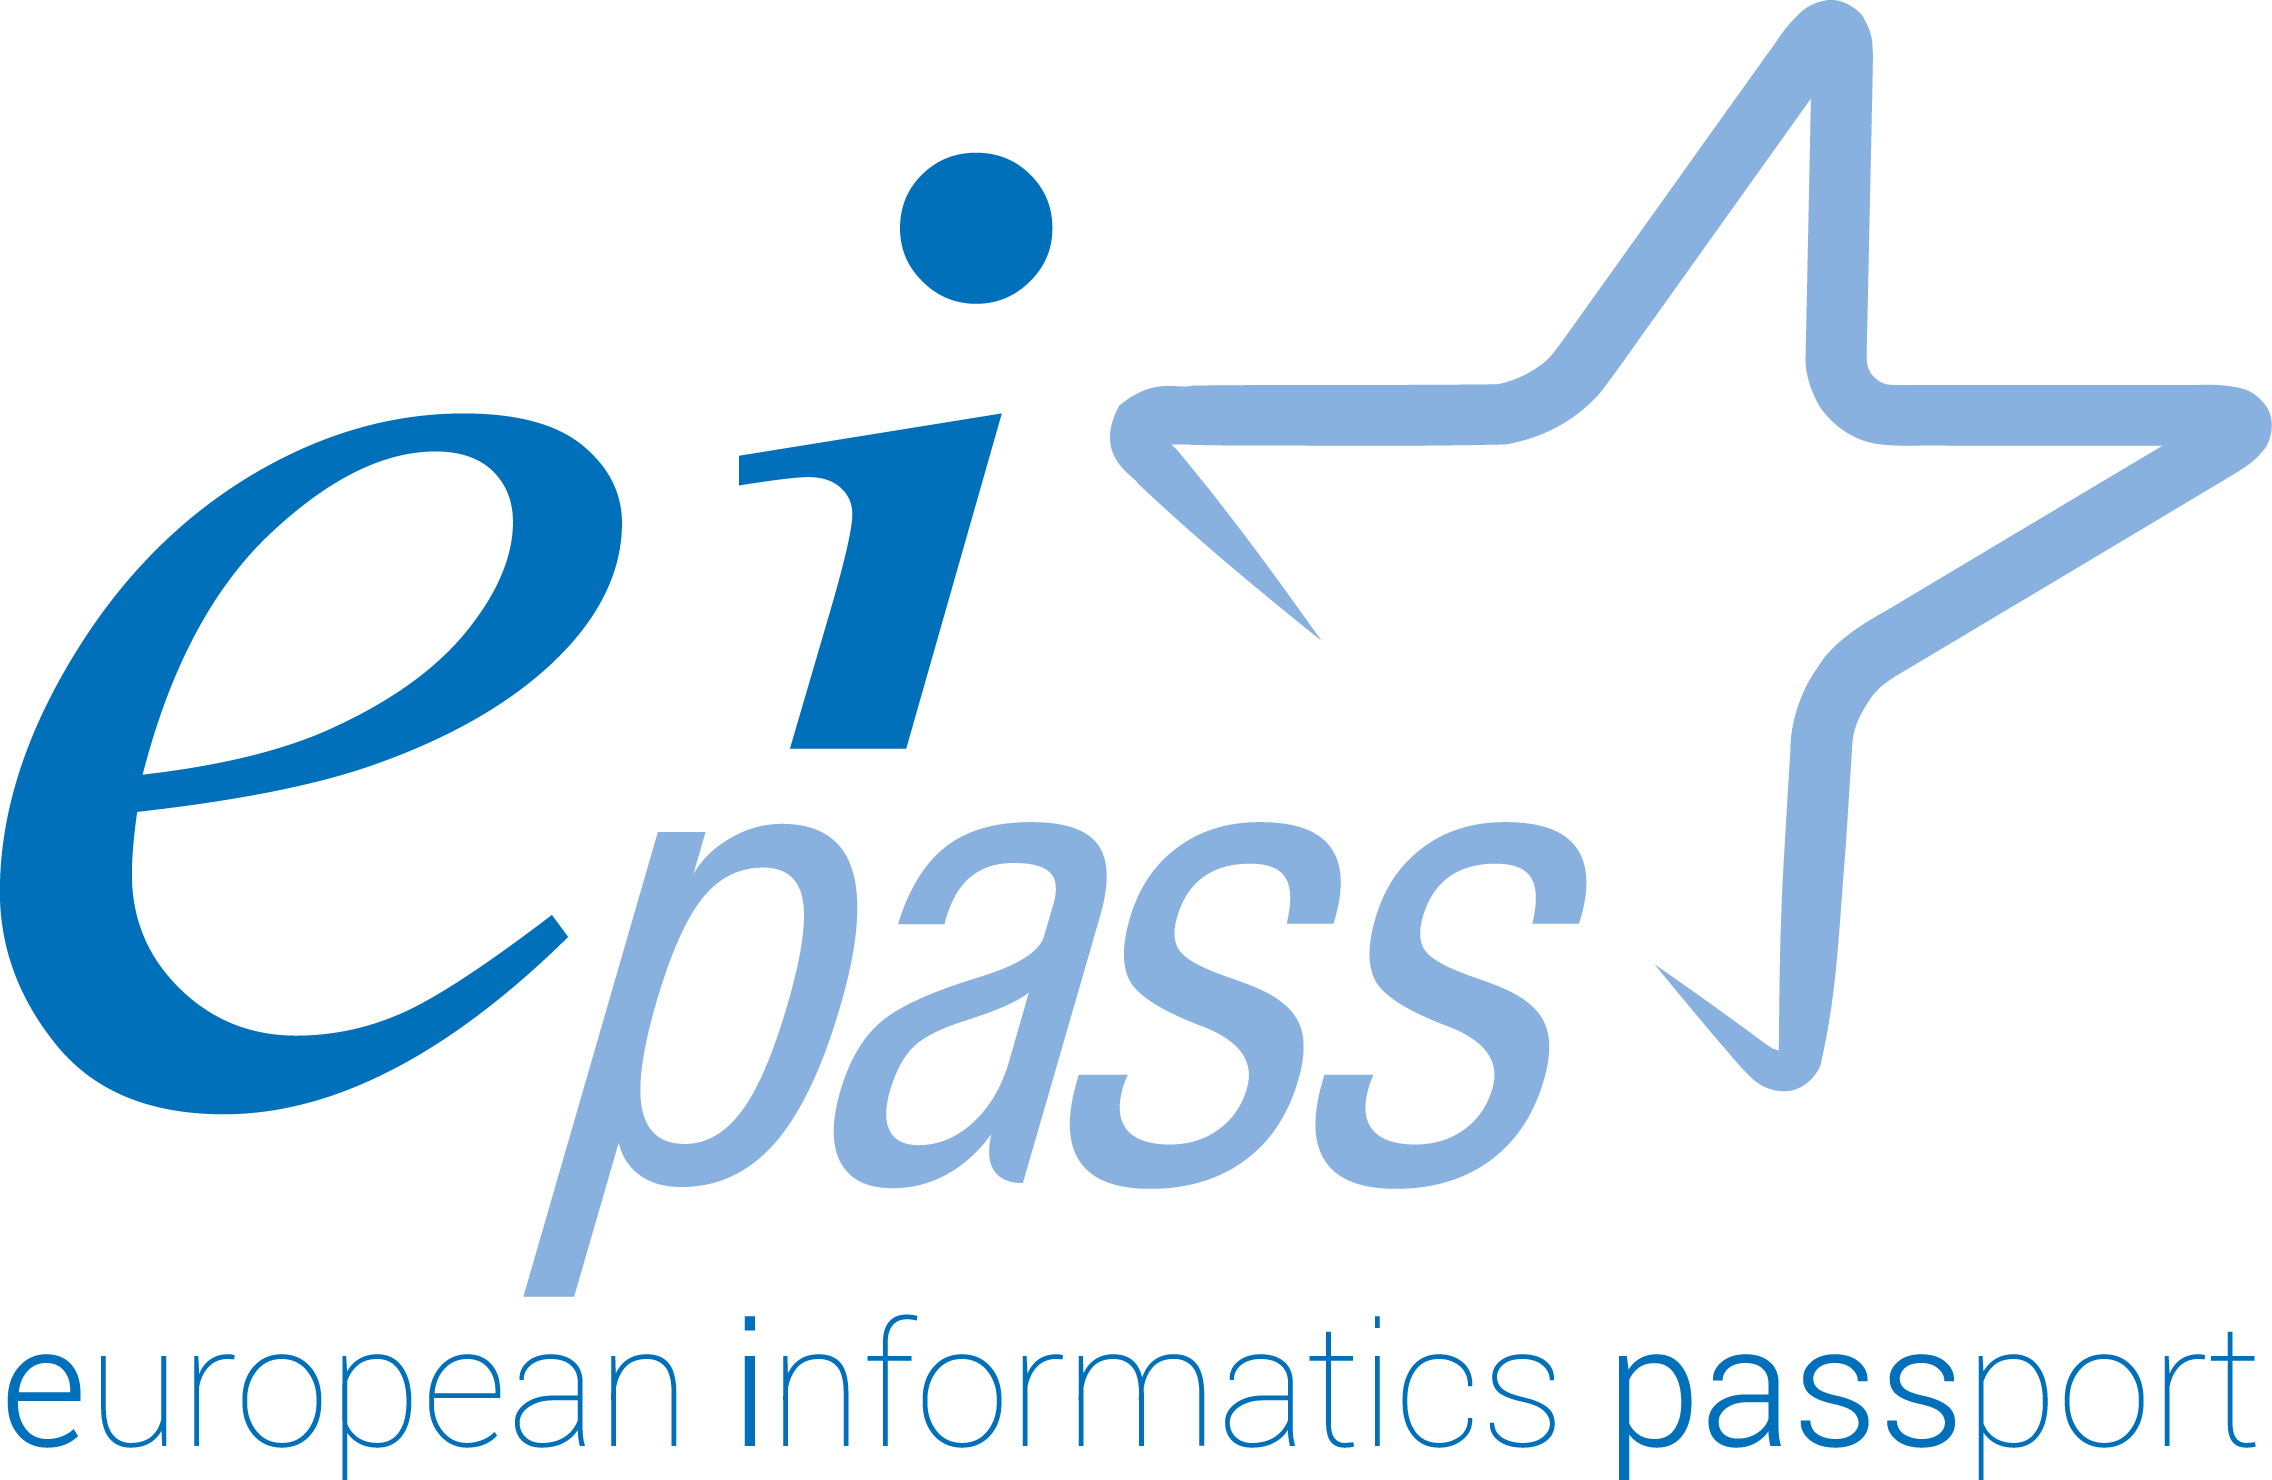 European Informatics Passport - EIPASS